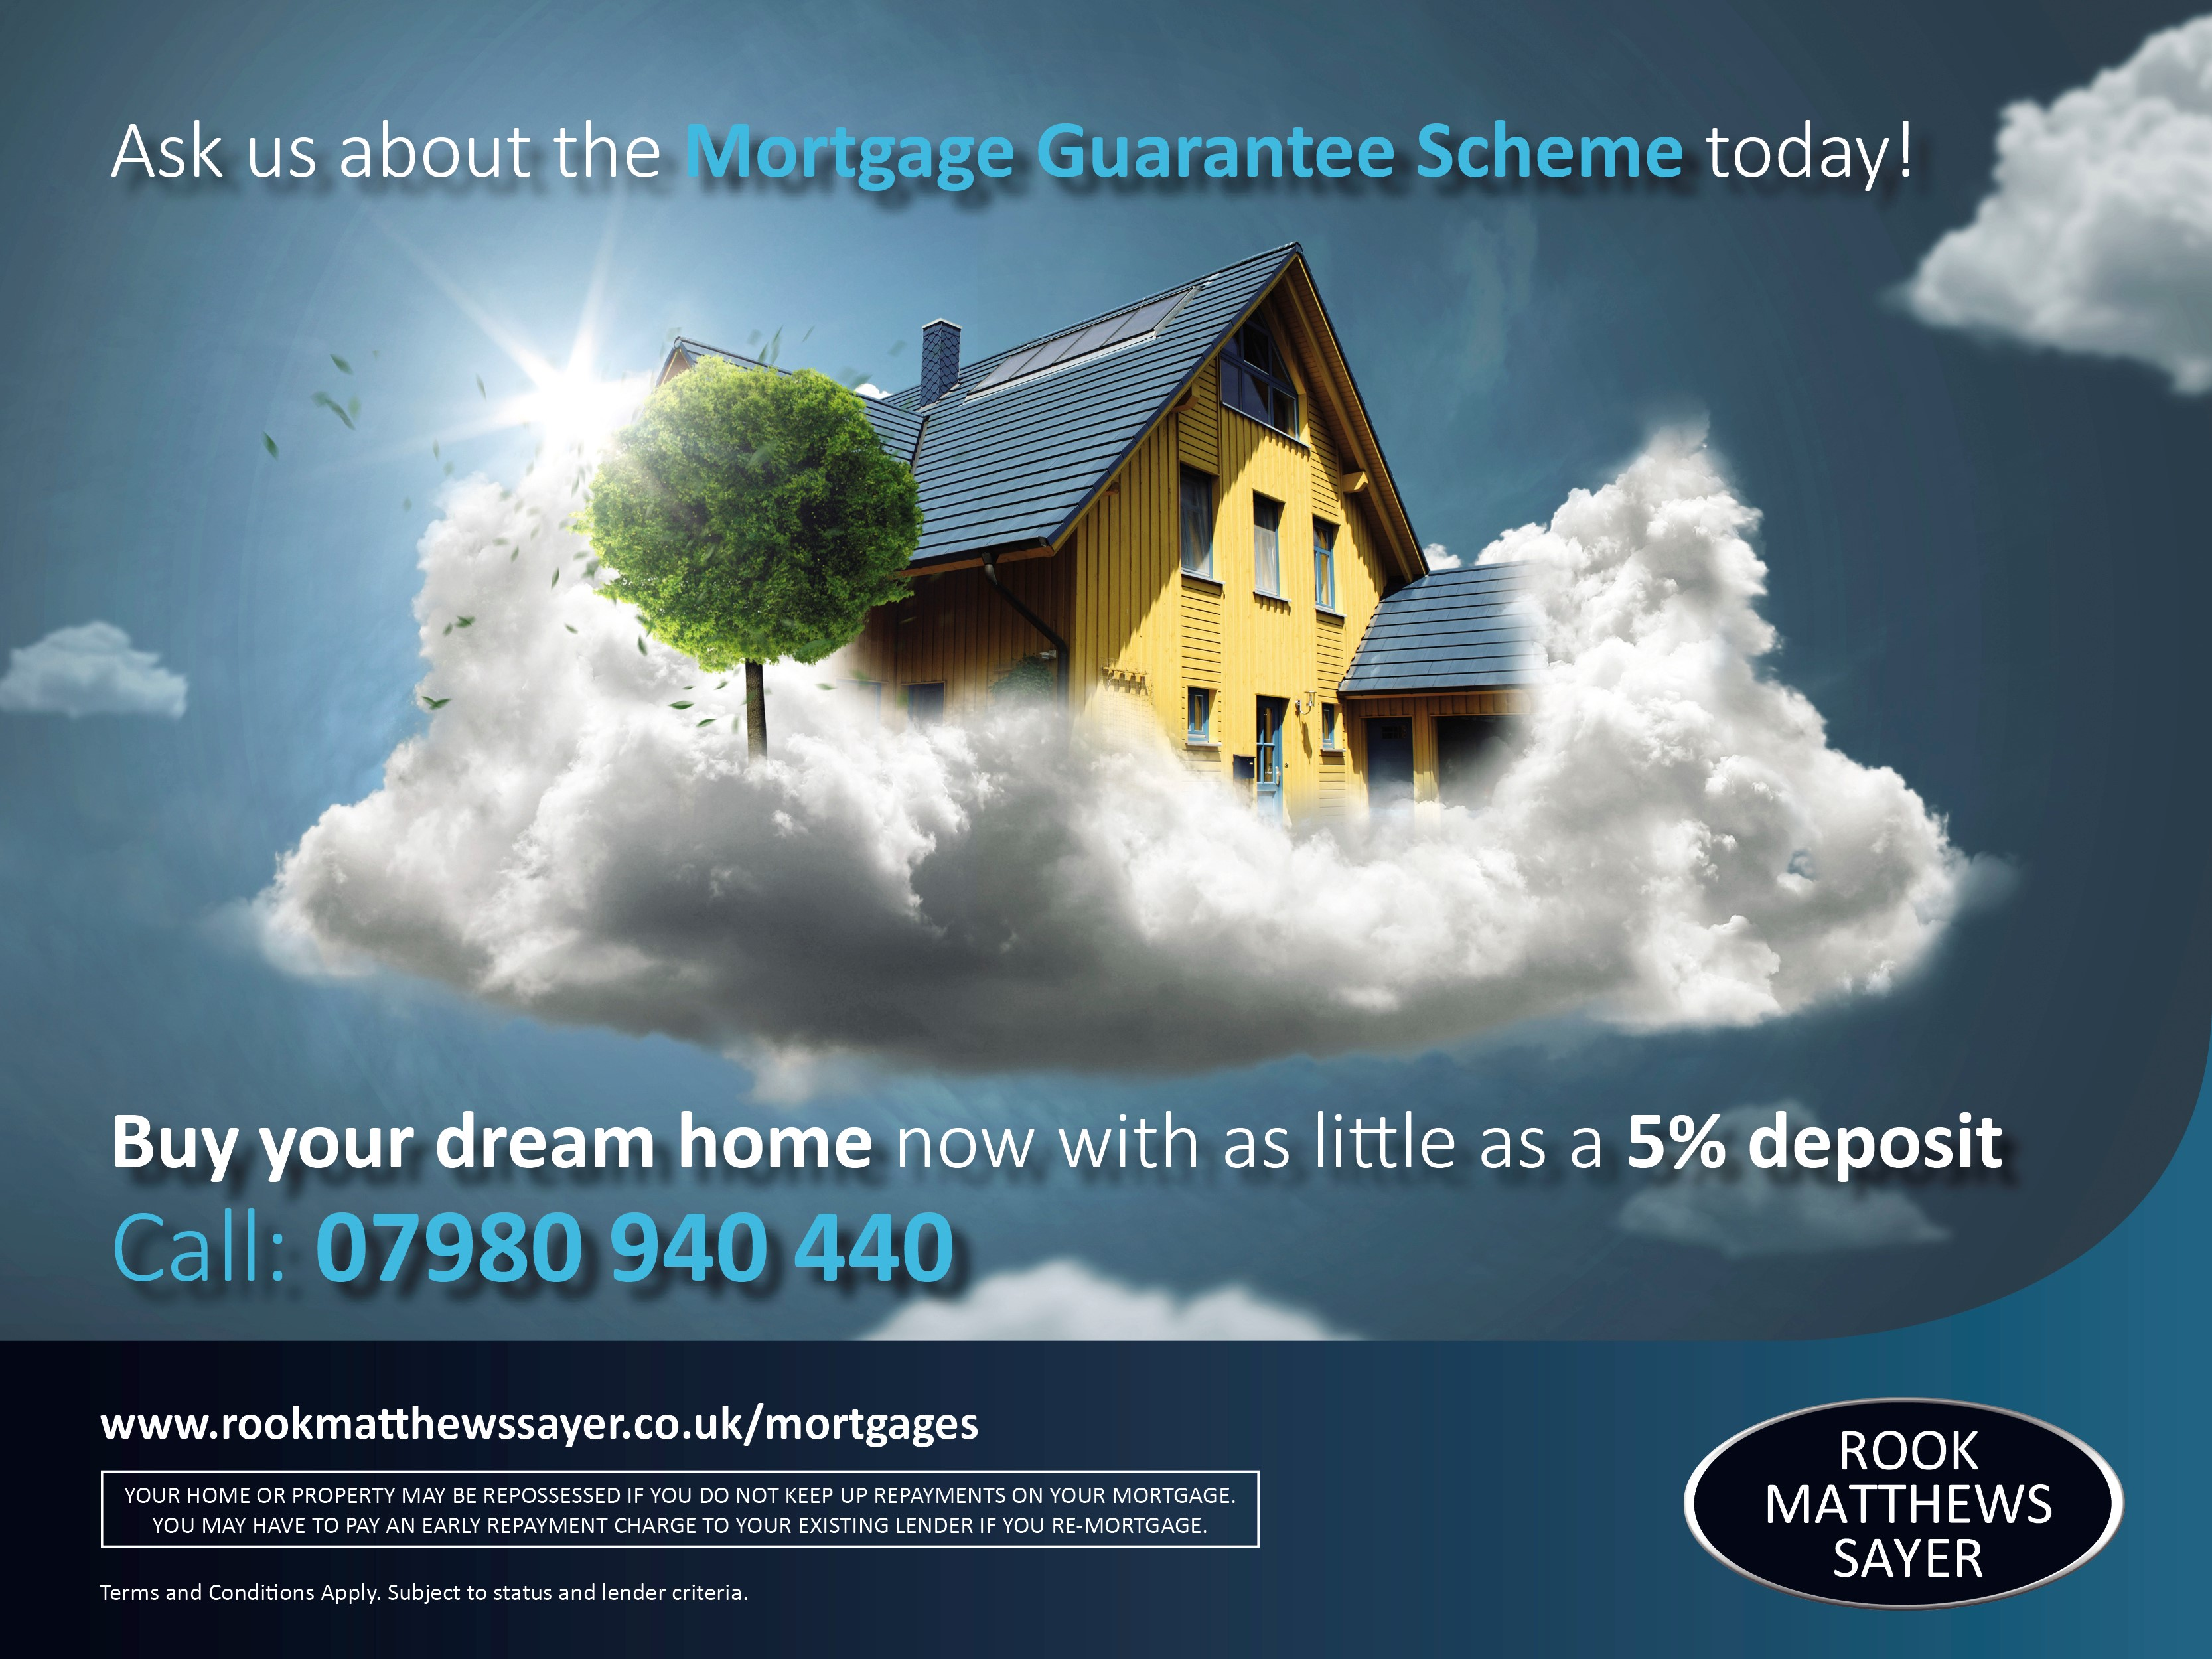 95% Mortgage Guarantee Scheme available now